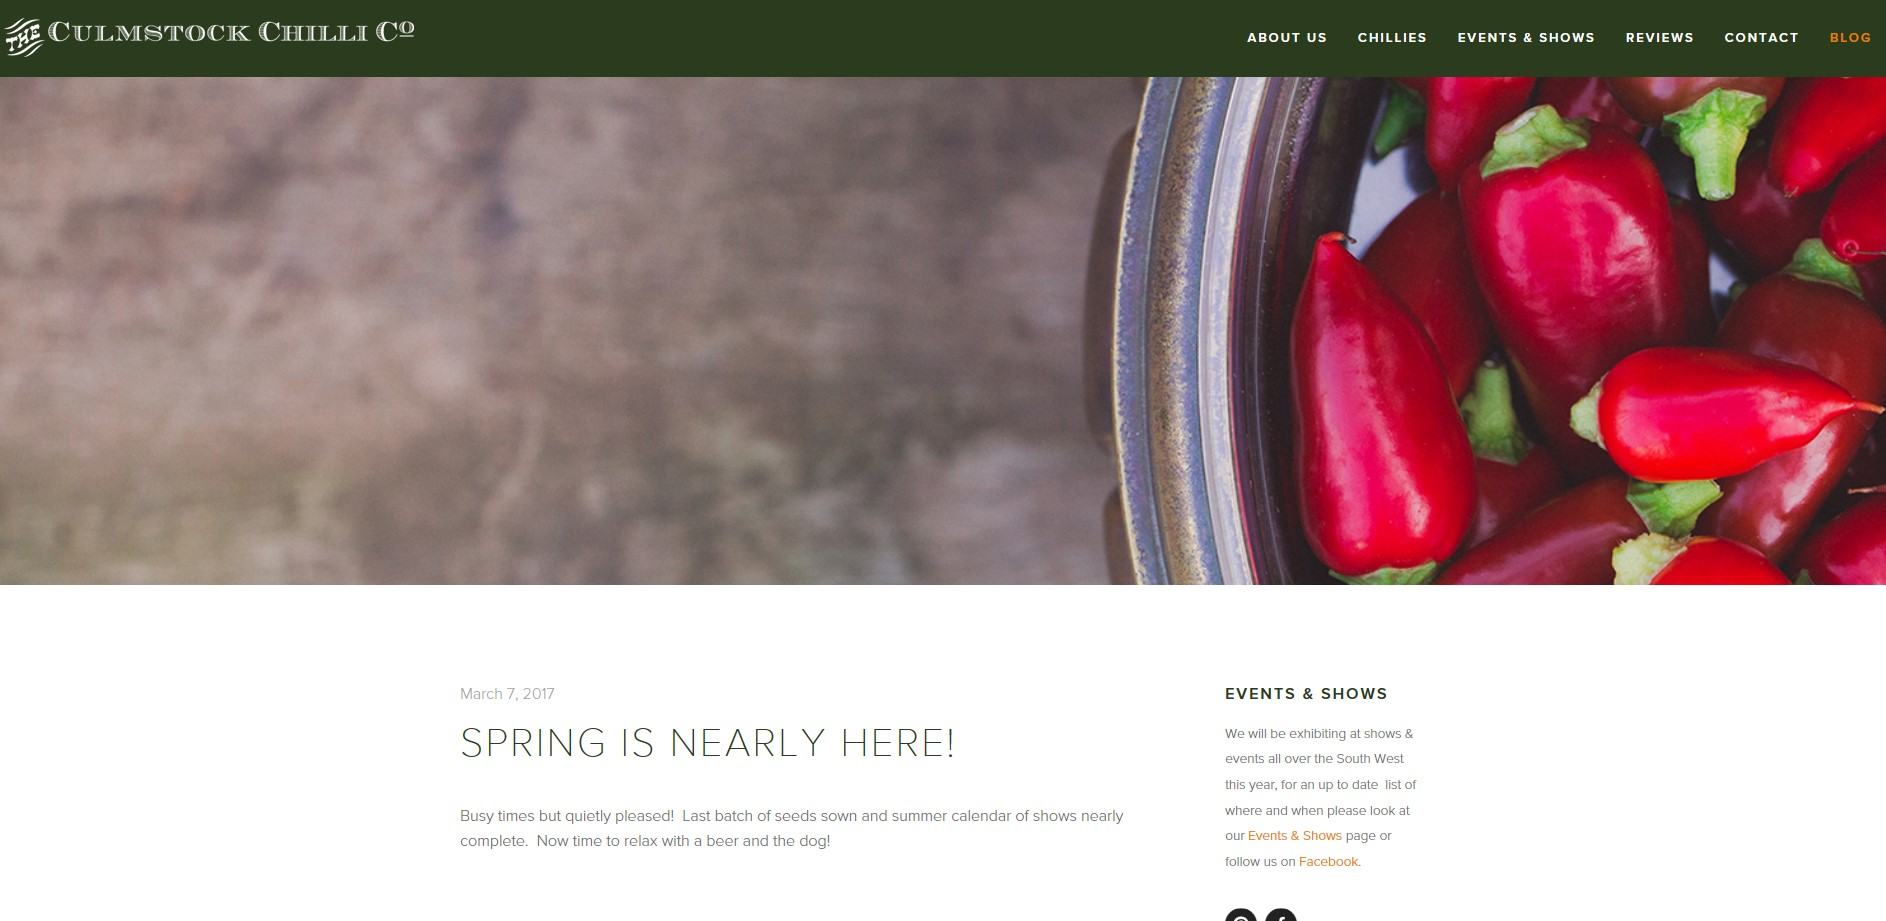 Screen shot of the Blog page on the Culmstock Chilli Co Website, commercial shoot by Perspectives Photography